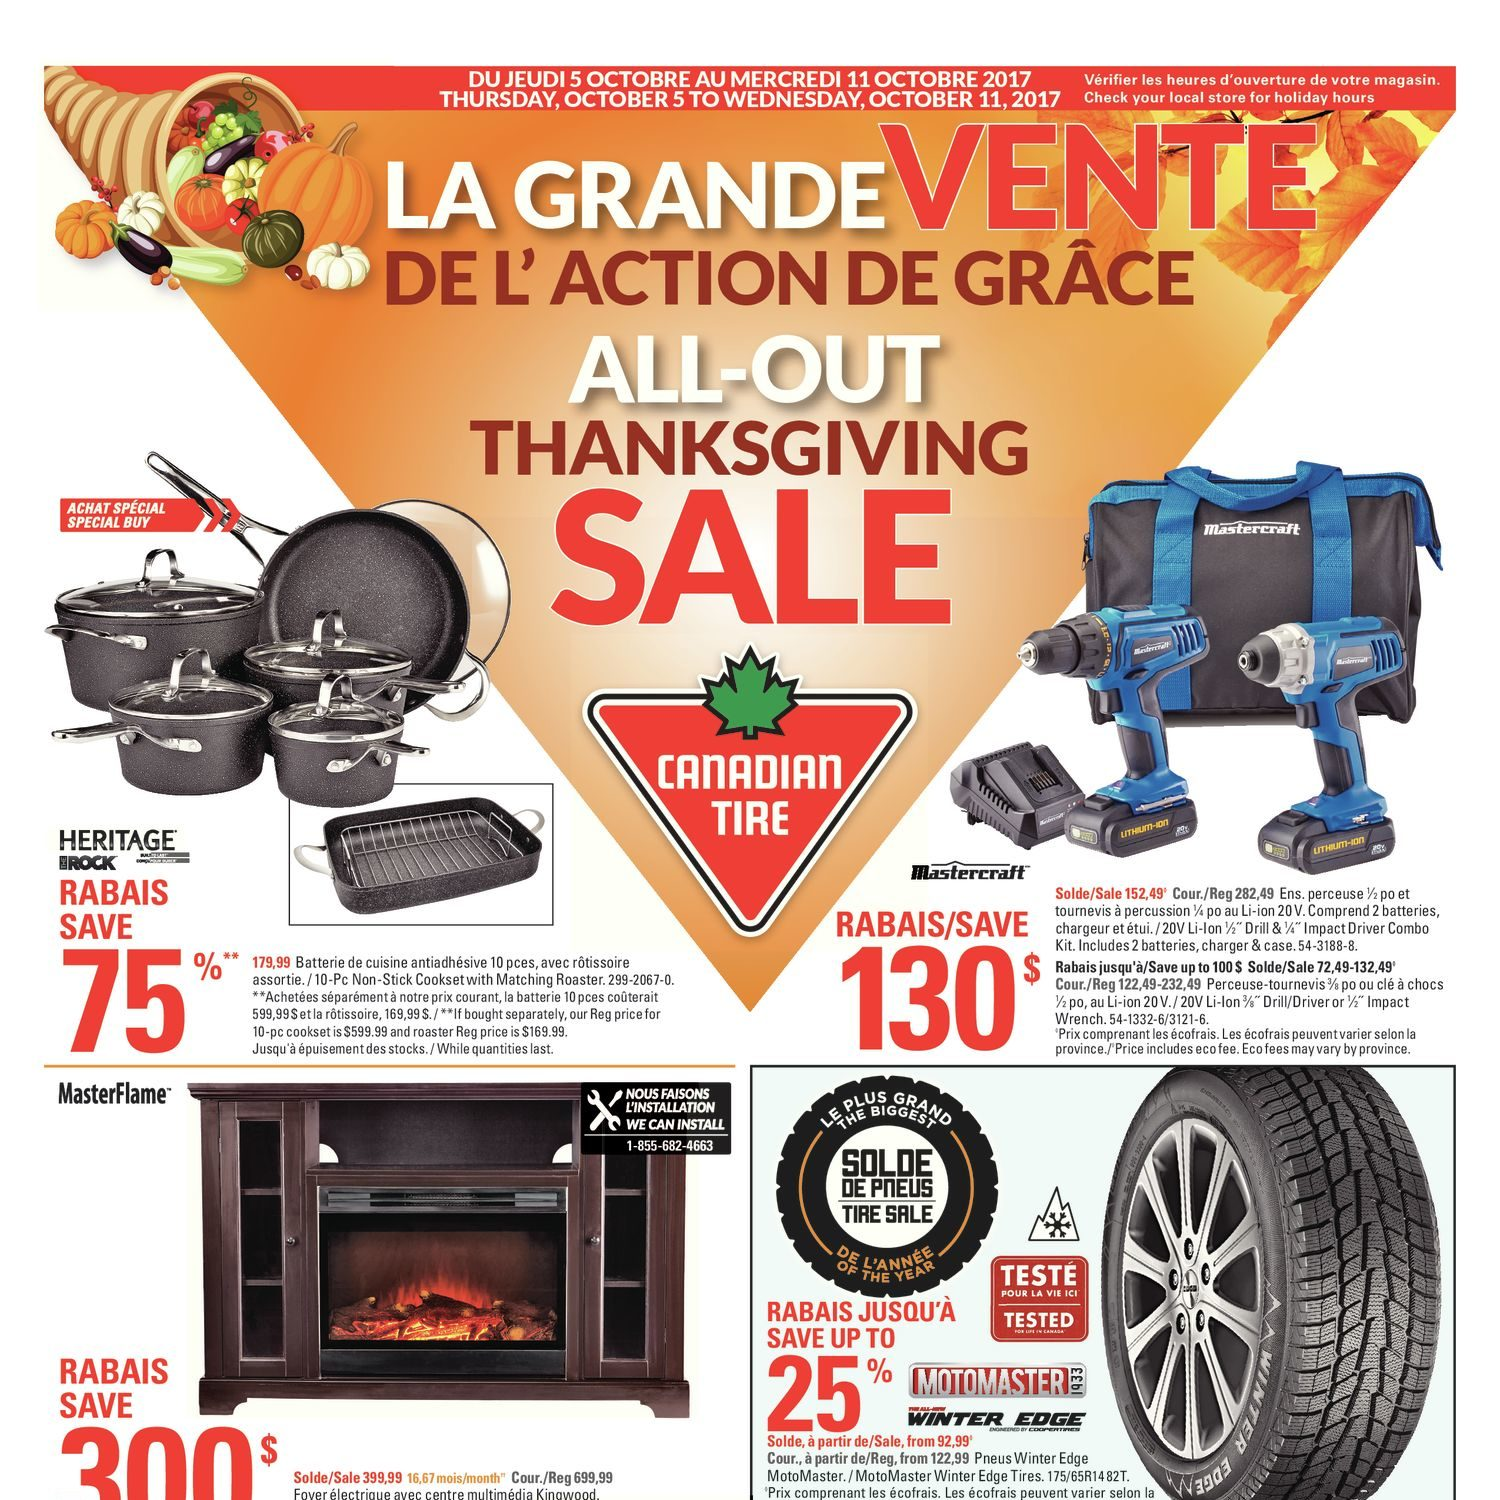 Canadian Tire Weekly Flyer - Weekly - All-Out Thanksgiving